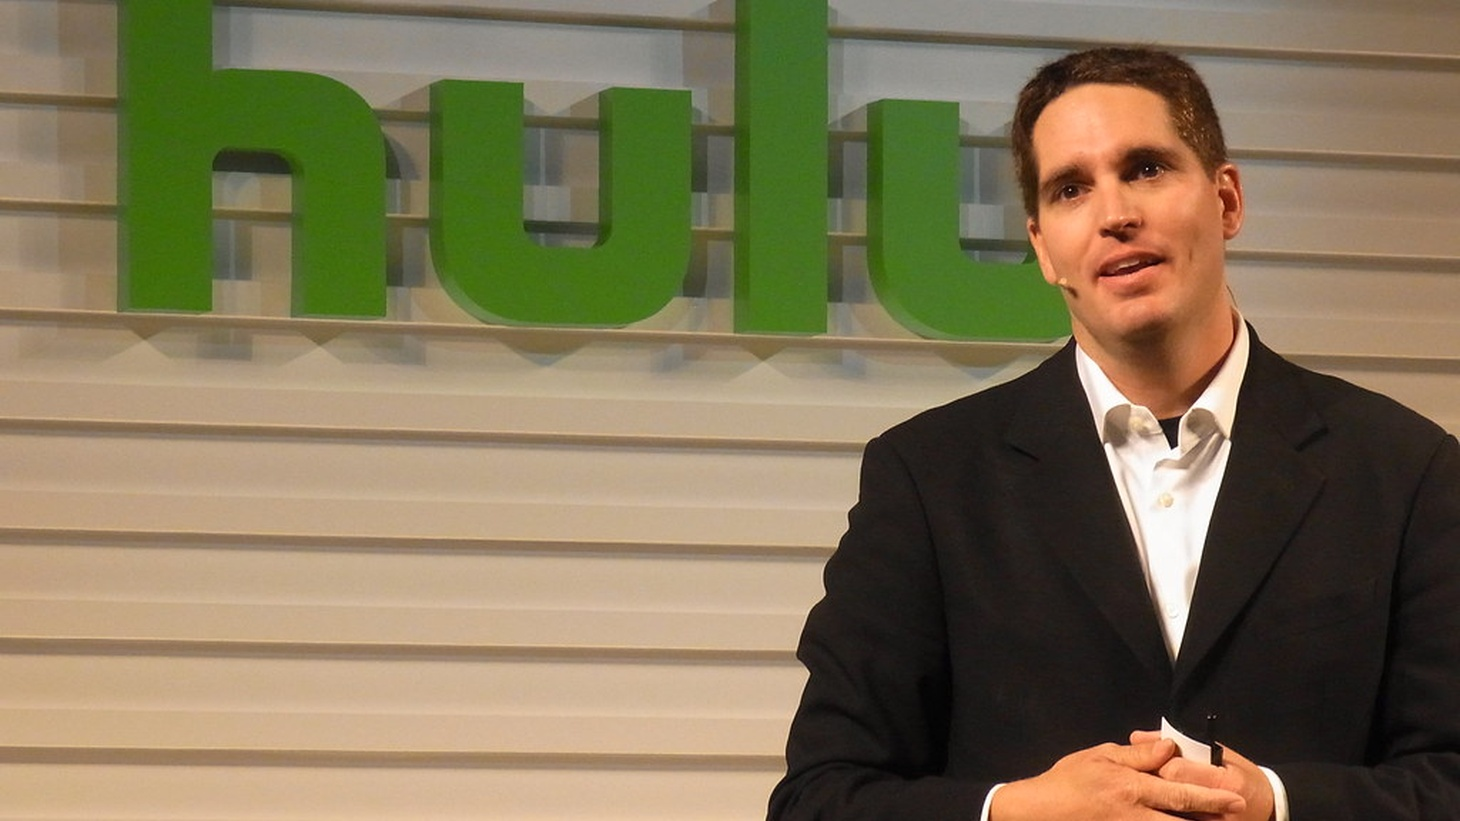 Jason Kilar, the founding CEO of Hulu, is now in charge of WarnerMedia.